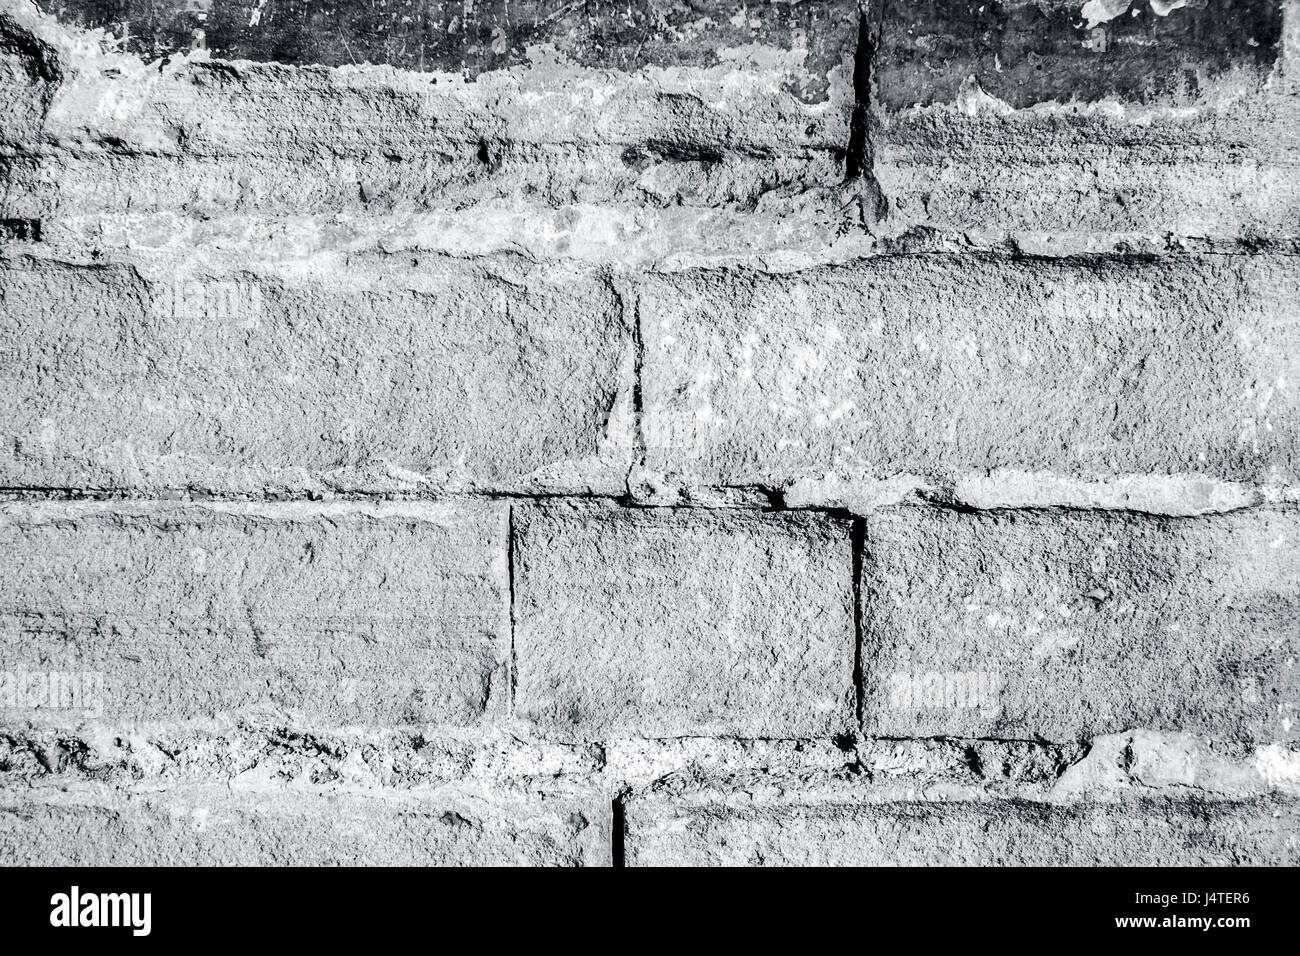 stone wall as background. - Stock Image